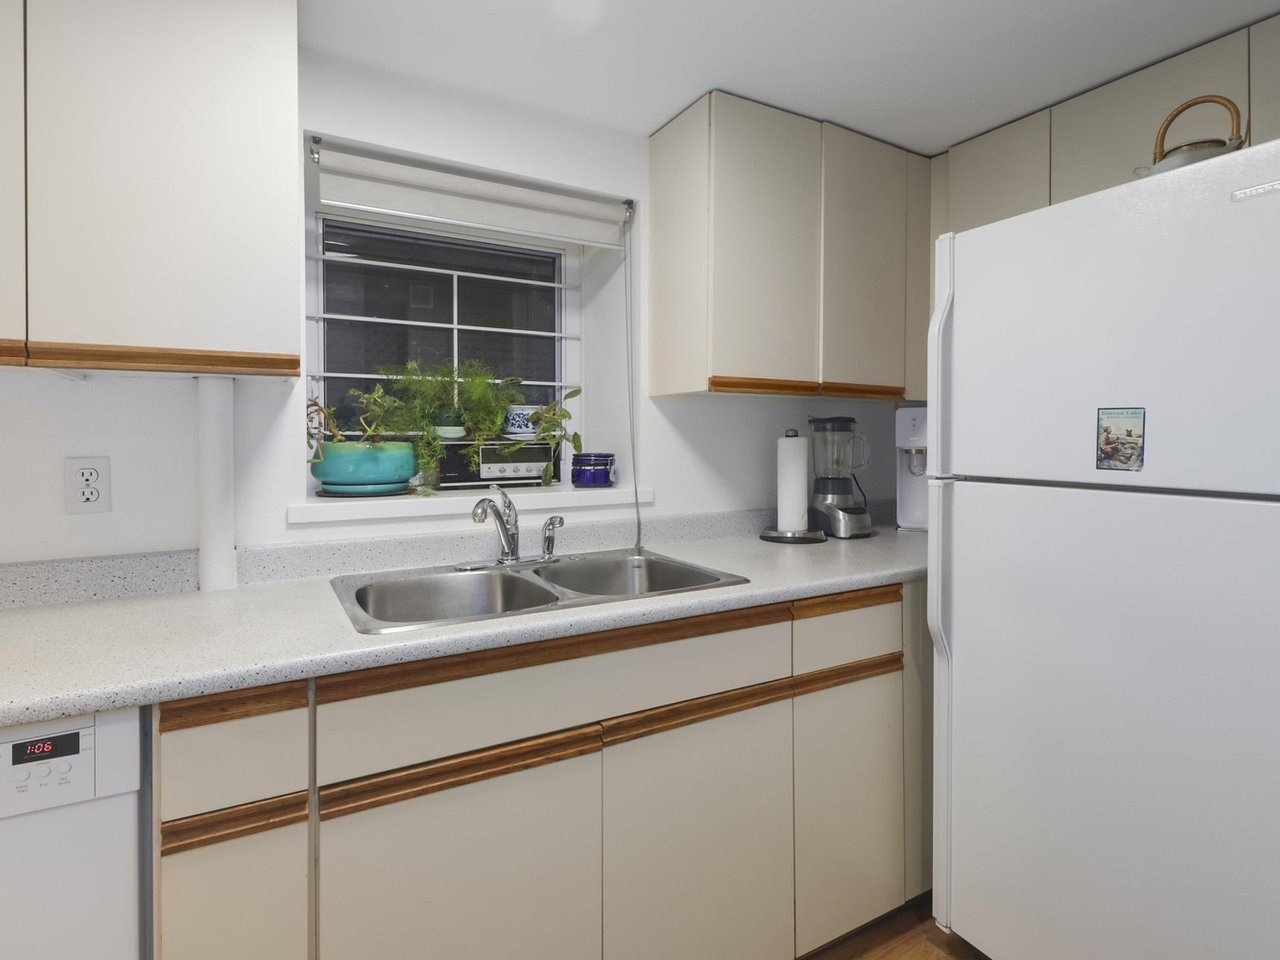 """Photo 6: Photos: 103 1943 E 1ST Avenue in Vancouver: Grandview Woodland Townhouse for sale in """"THE VAULT"""" (Vancouver East)  : MLS®# R2465391"""